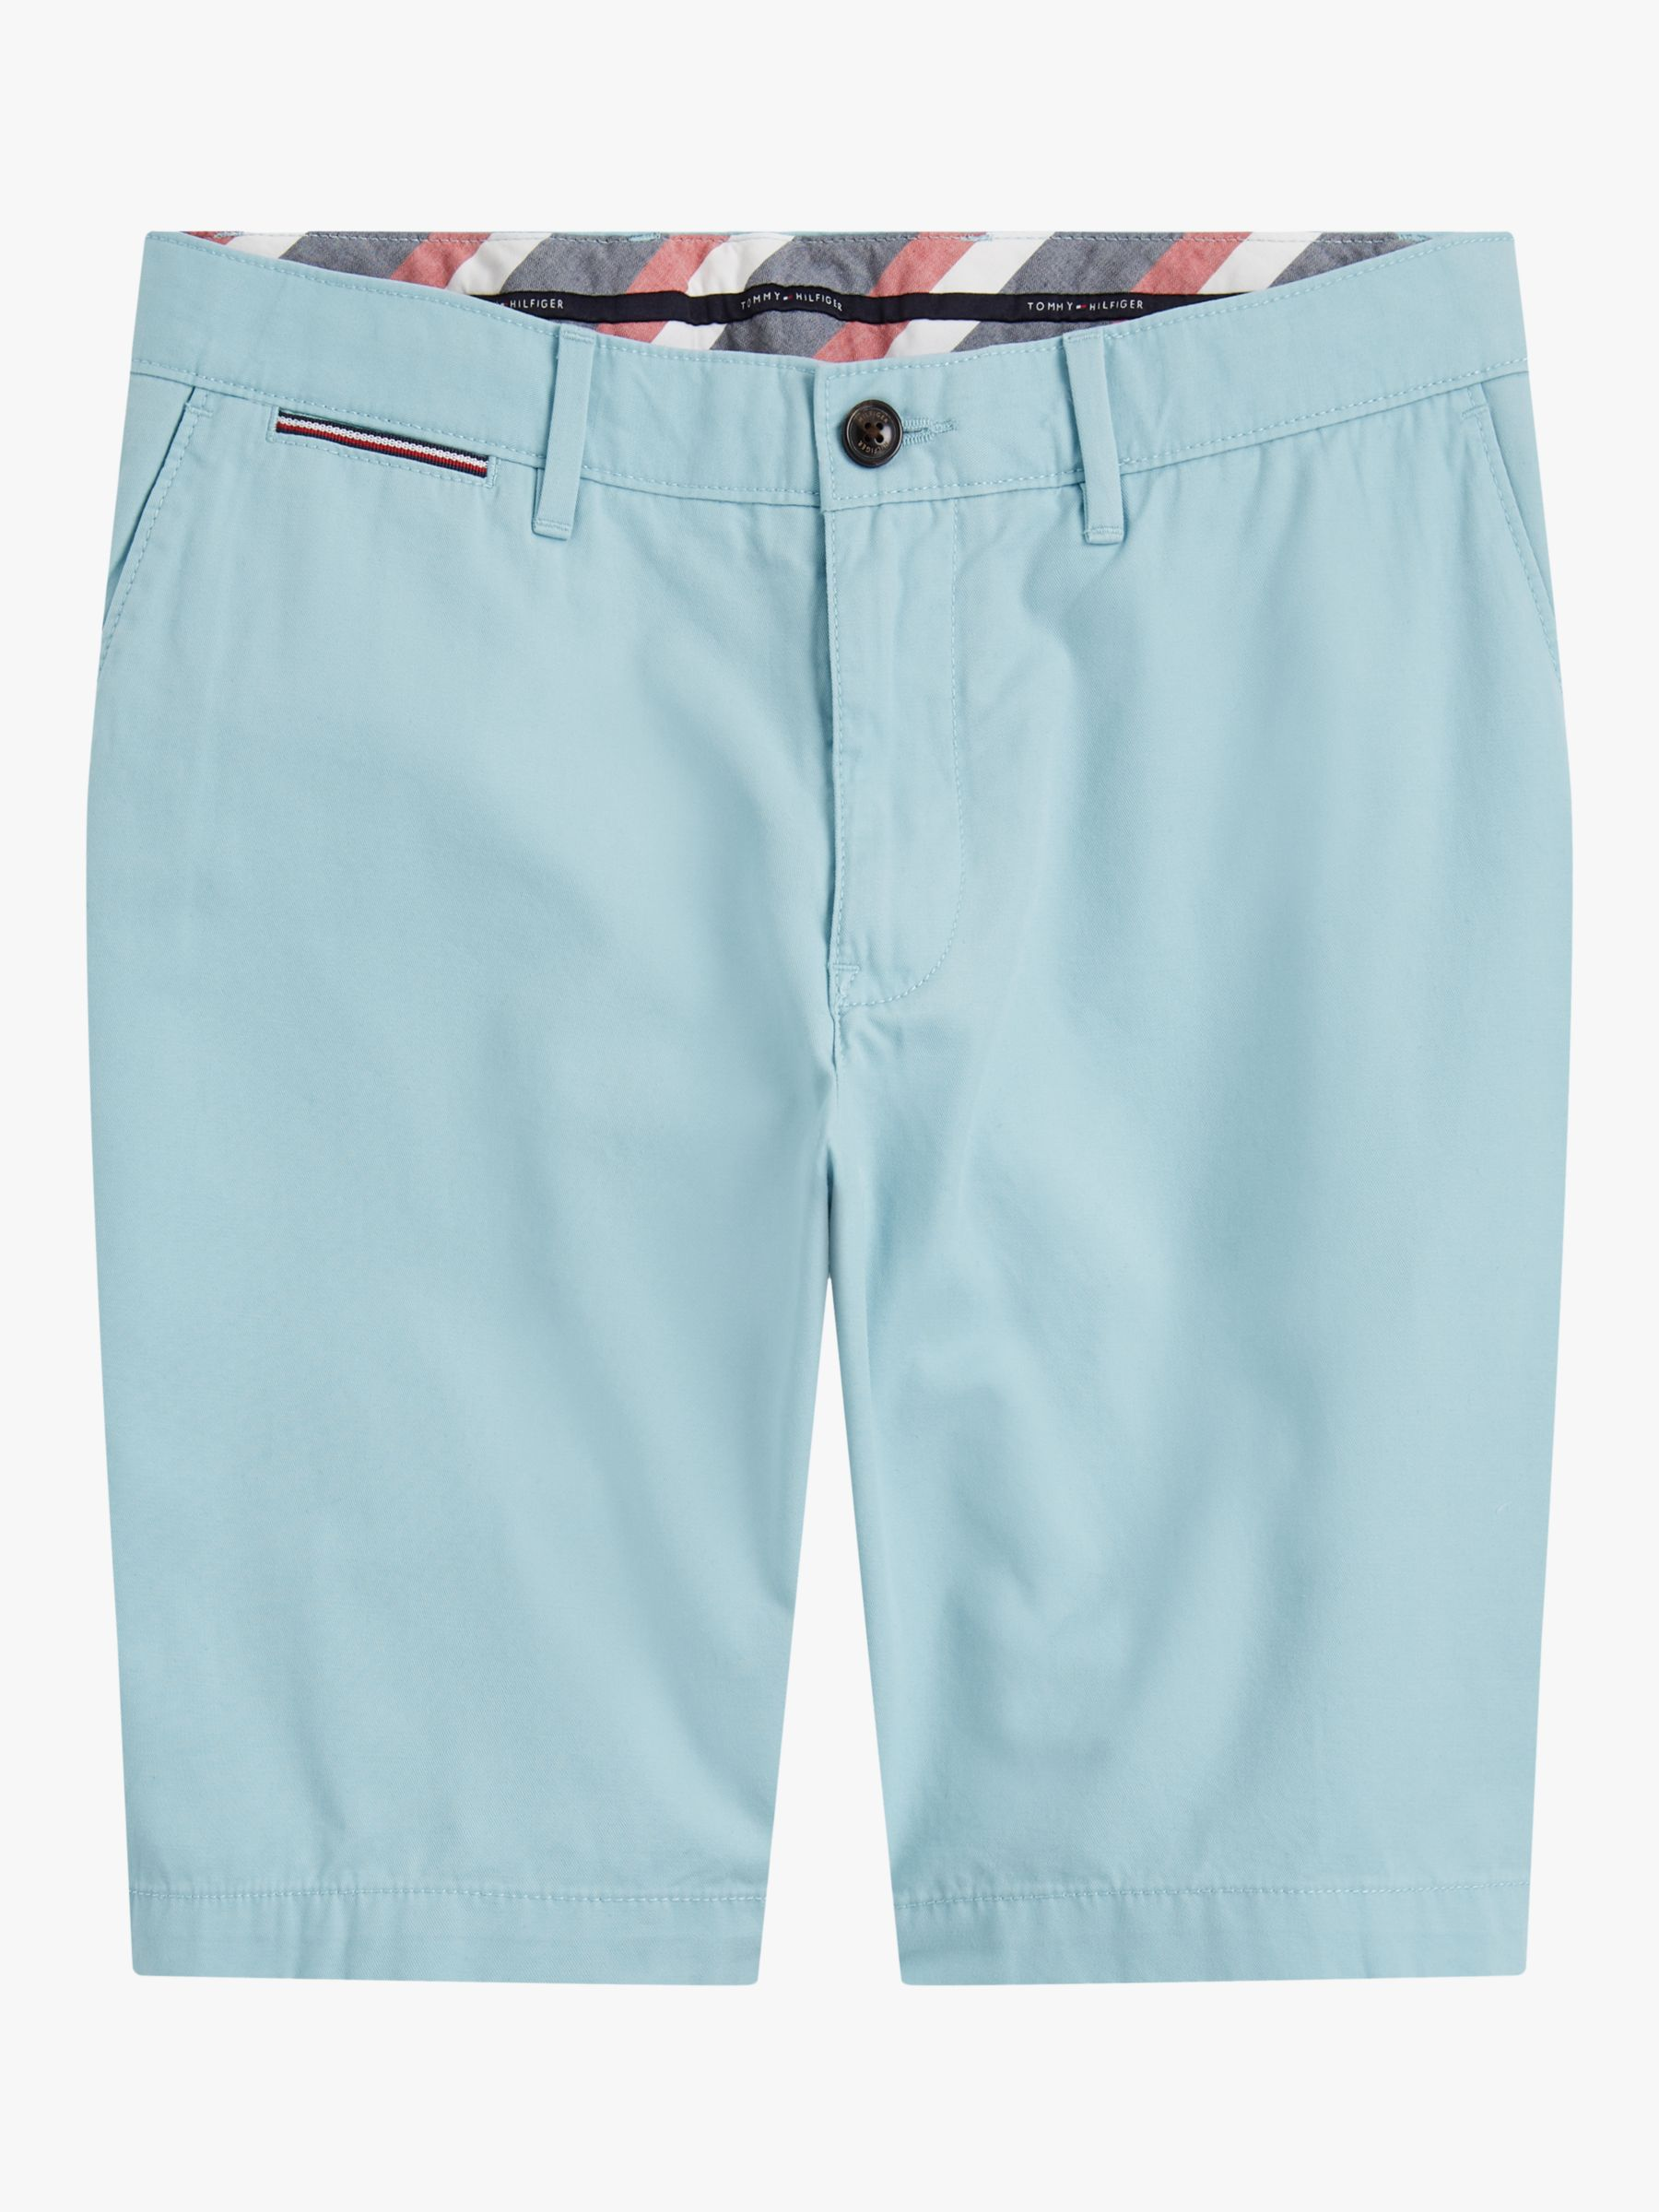 preppy pattern chino tommy hilfiger